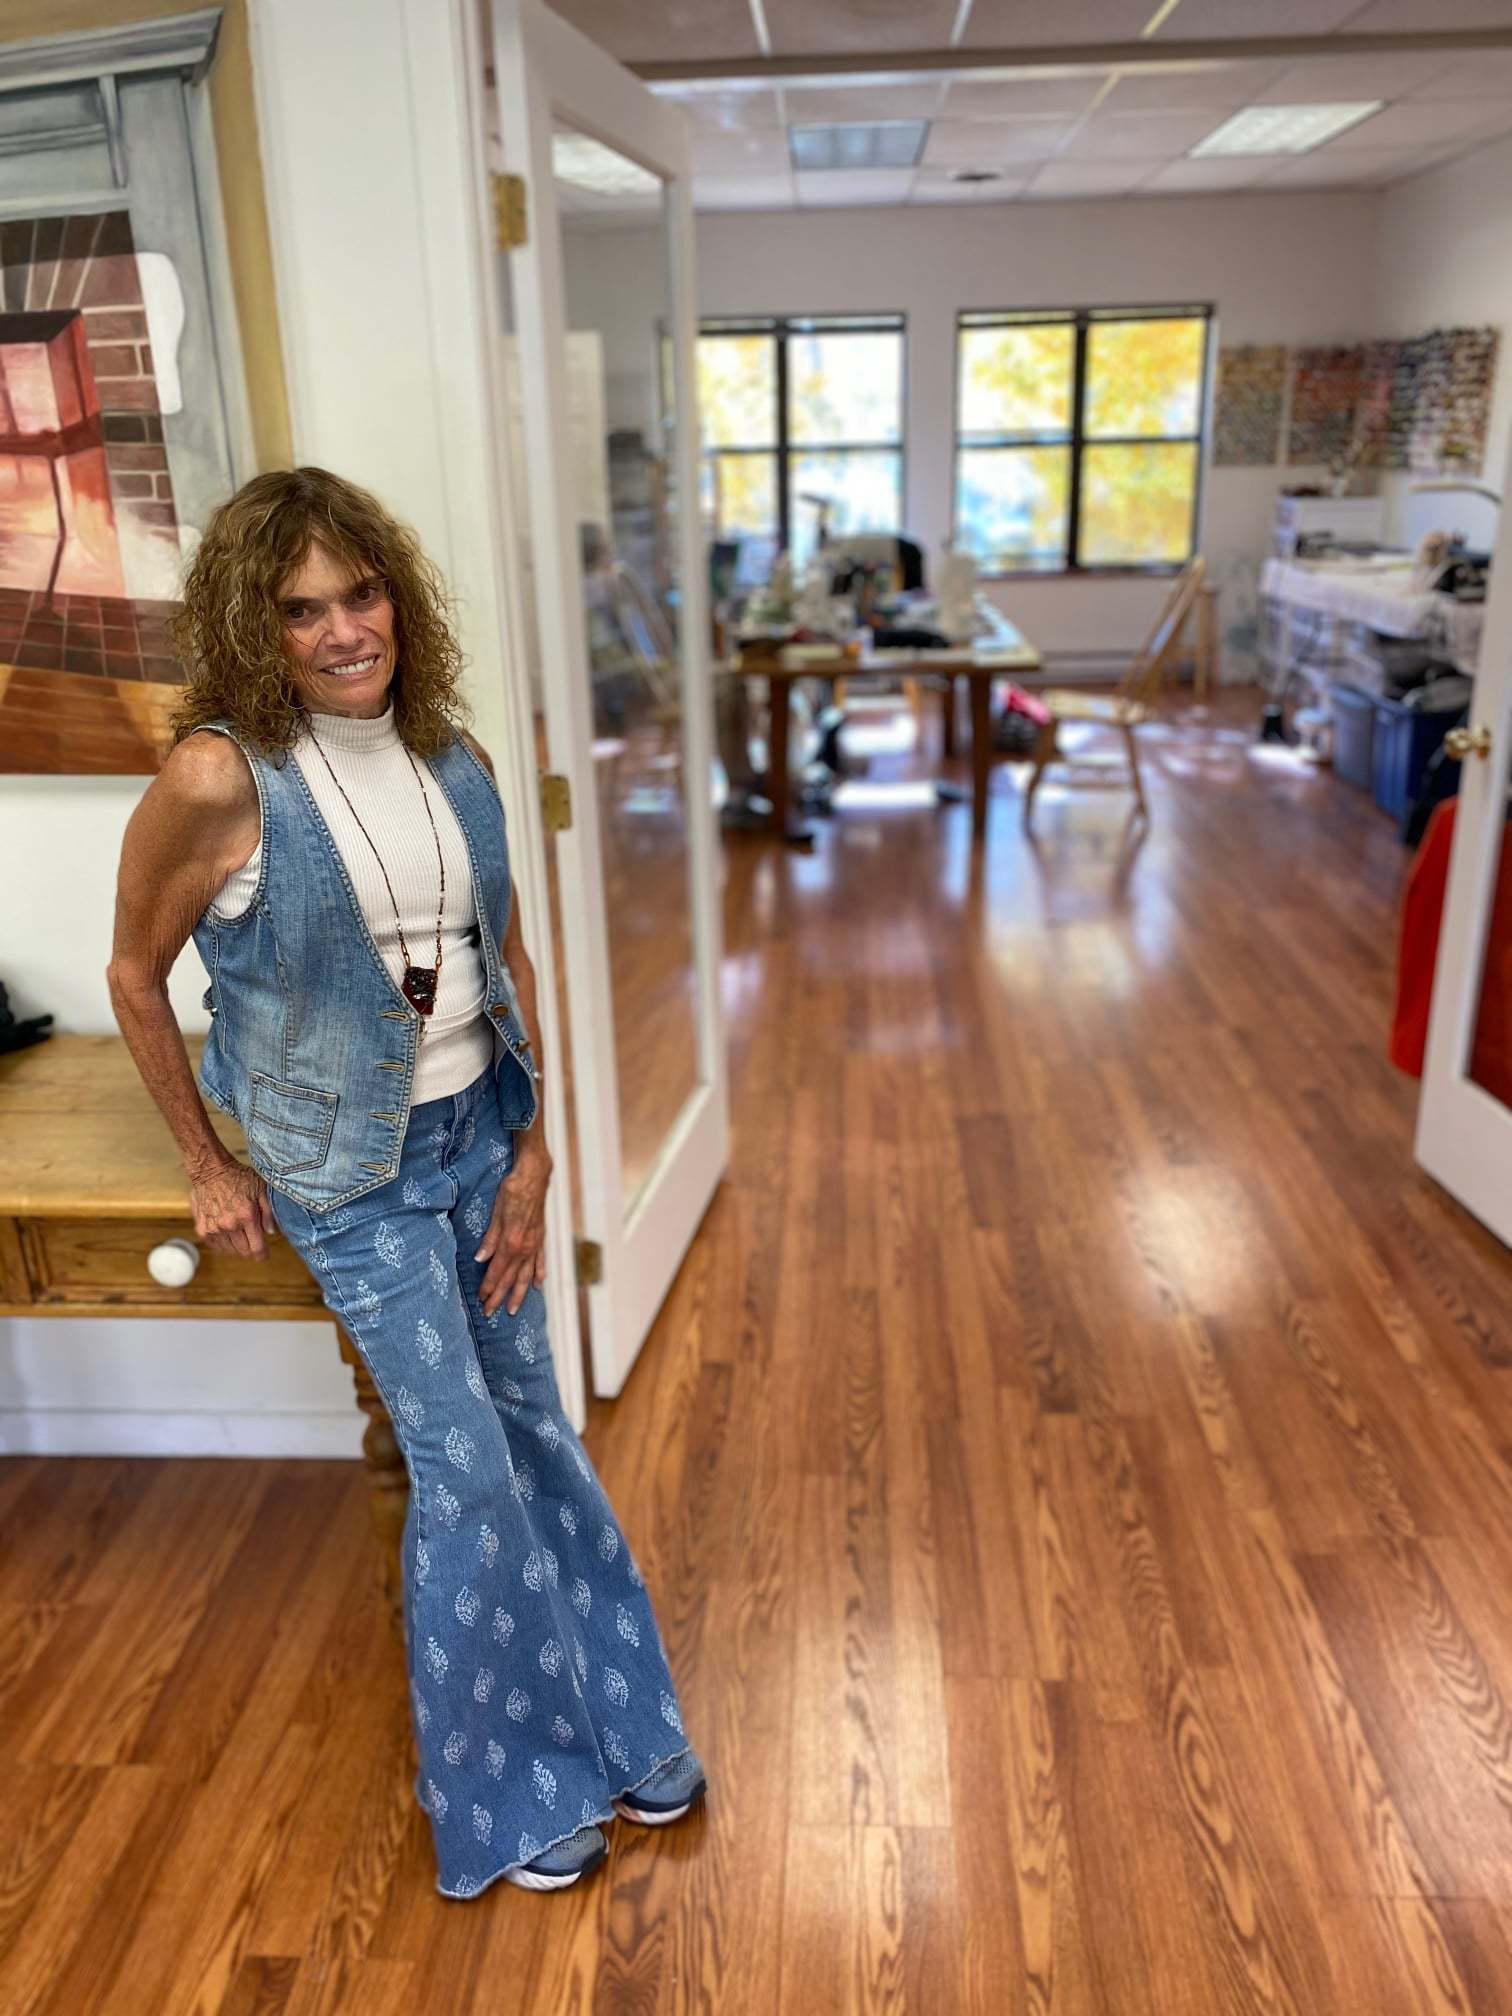 Peggy Chain at Mountainside Sewing in Basalt. Courtesy photo.